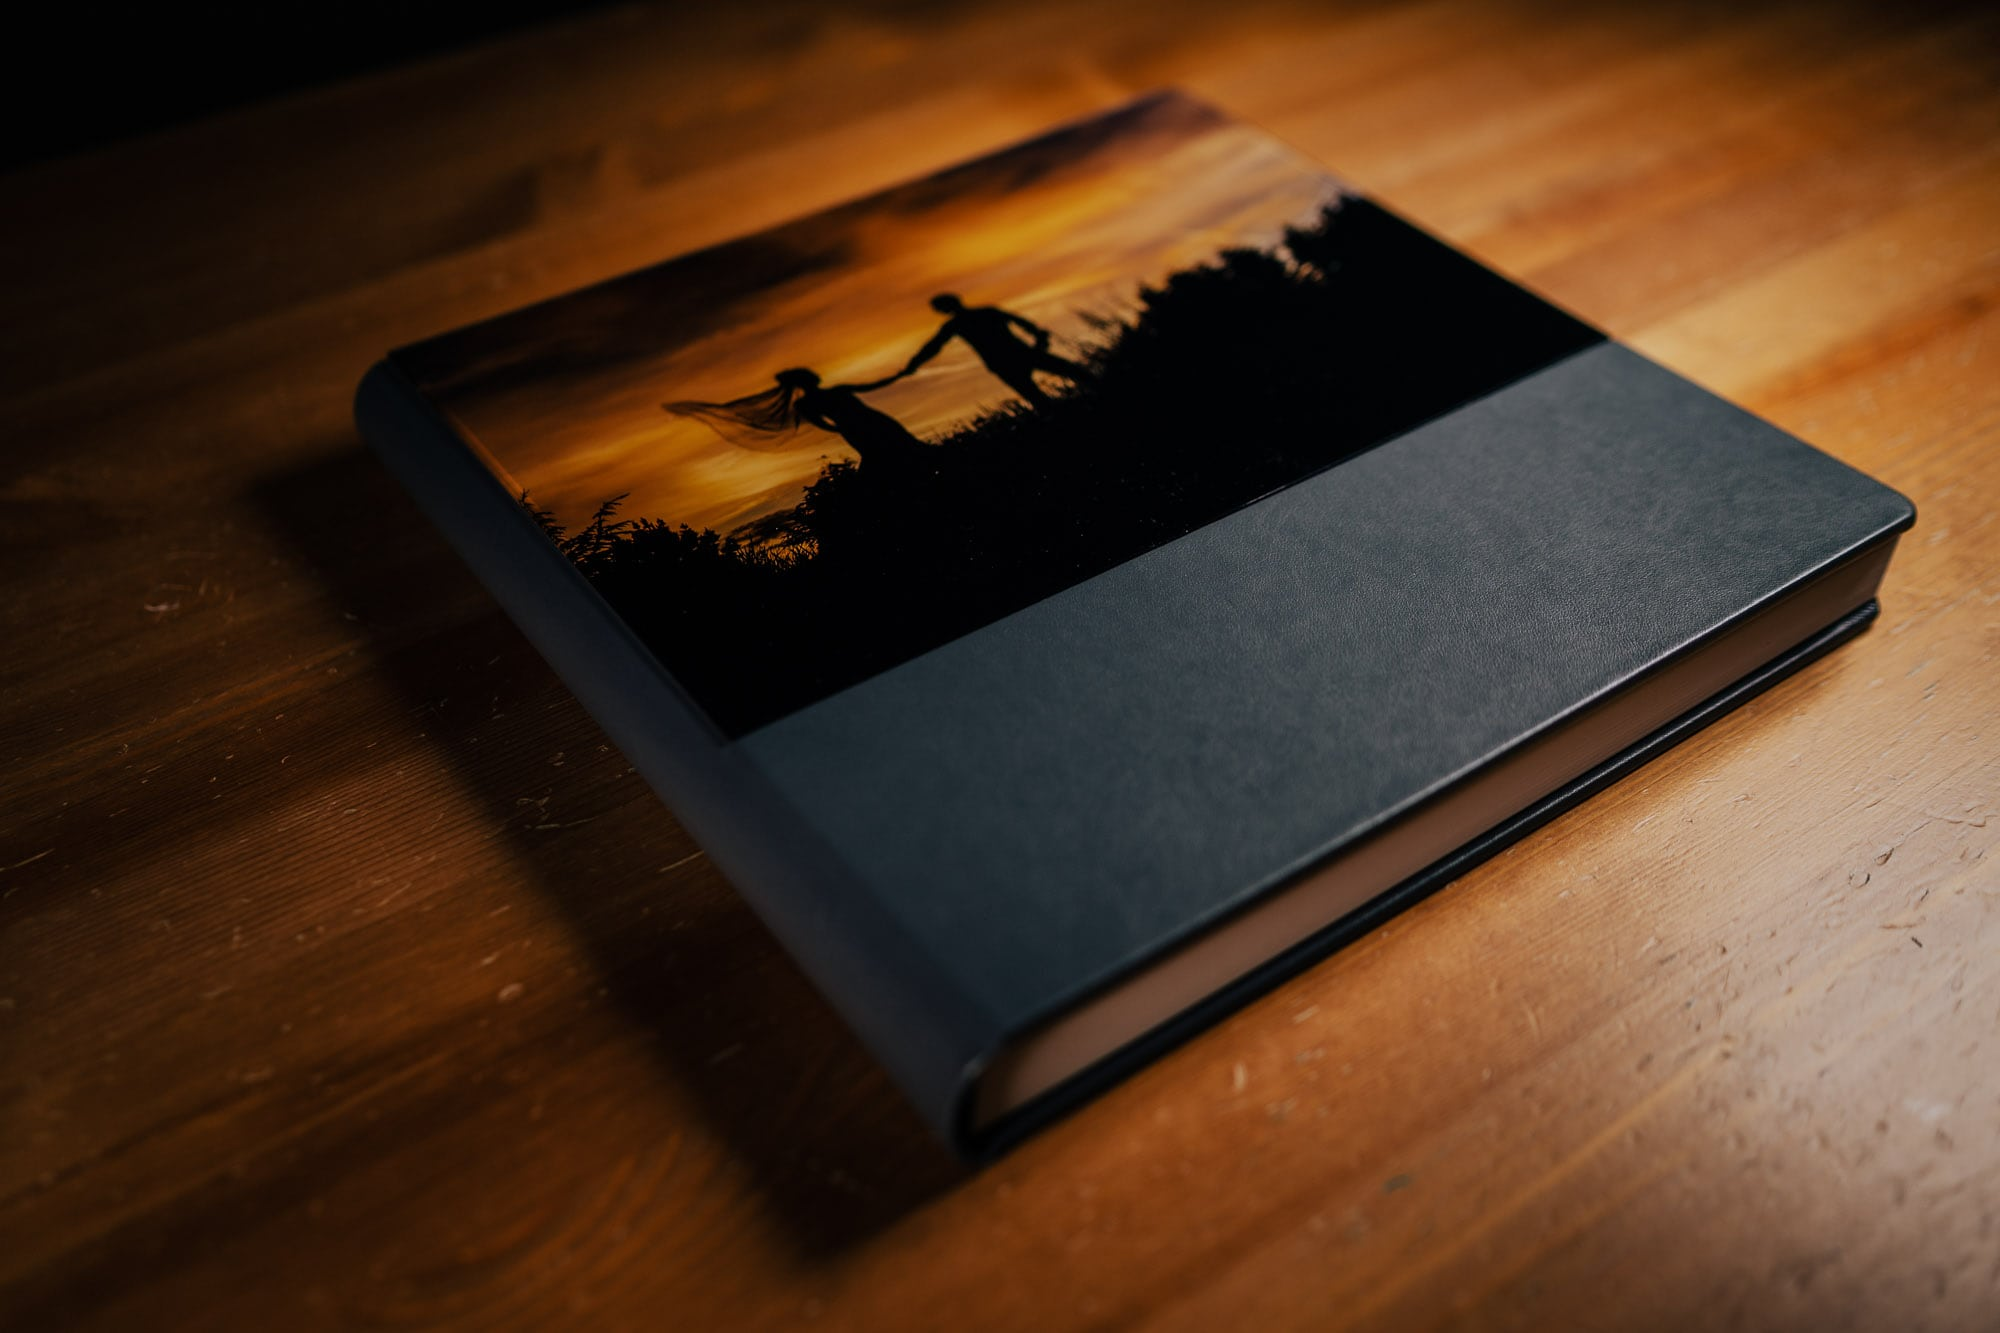 stylish high quality wedding albums professionally designed to tell the story of your day